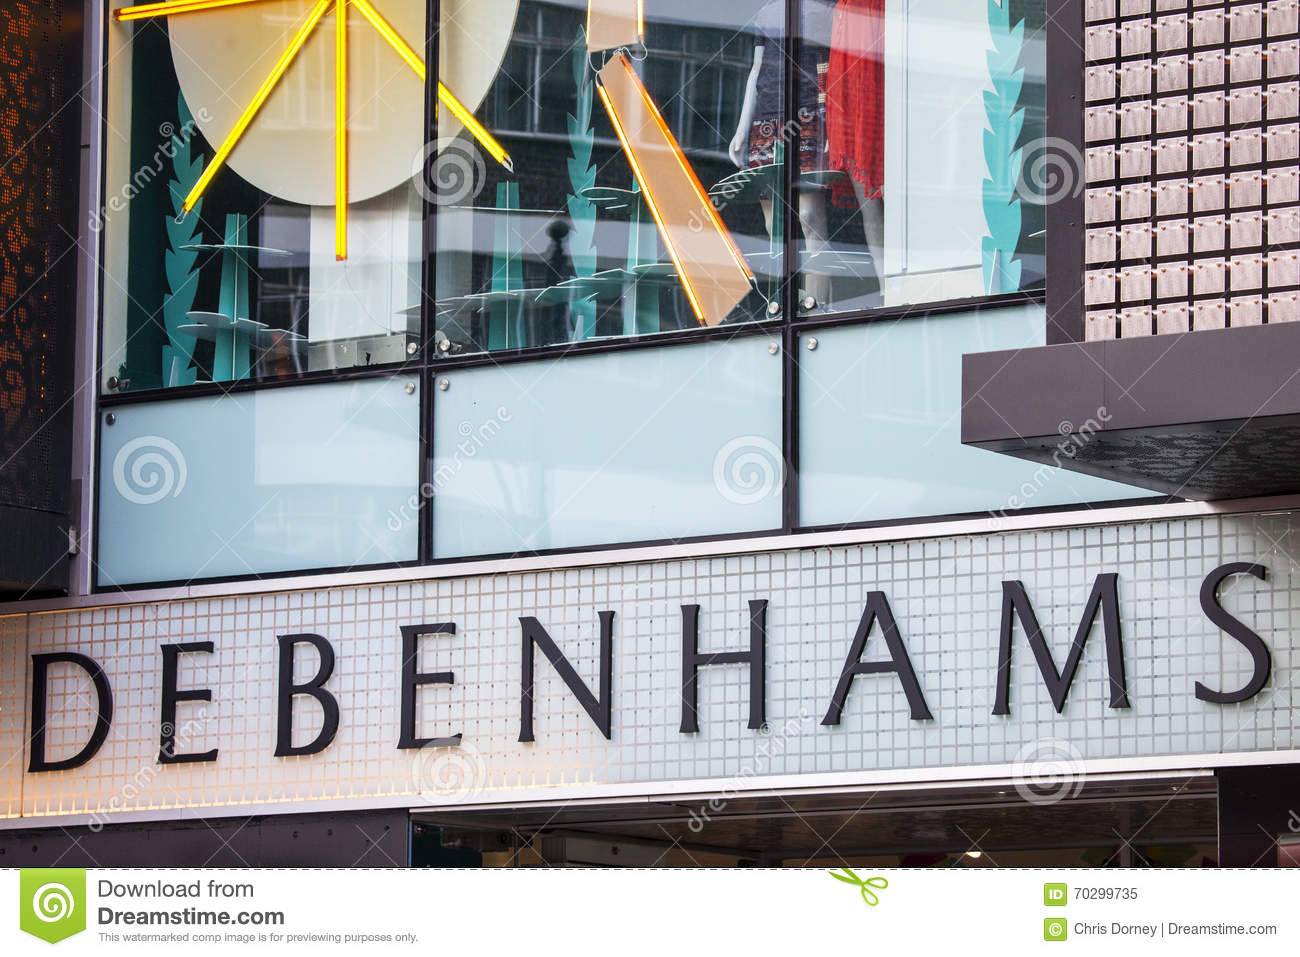 79e71cbb8bd13 LONDON, UK - APRIL 7TH 2016: The logo on the exterior of the Debenhams  department store on Oxford Street in central London, on 7th April 2016.